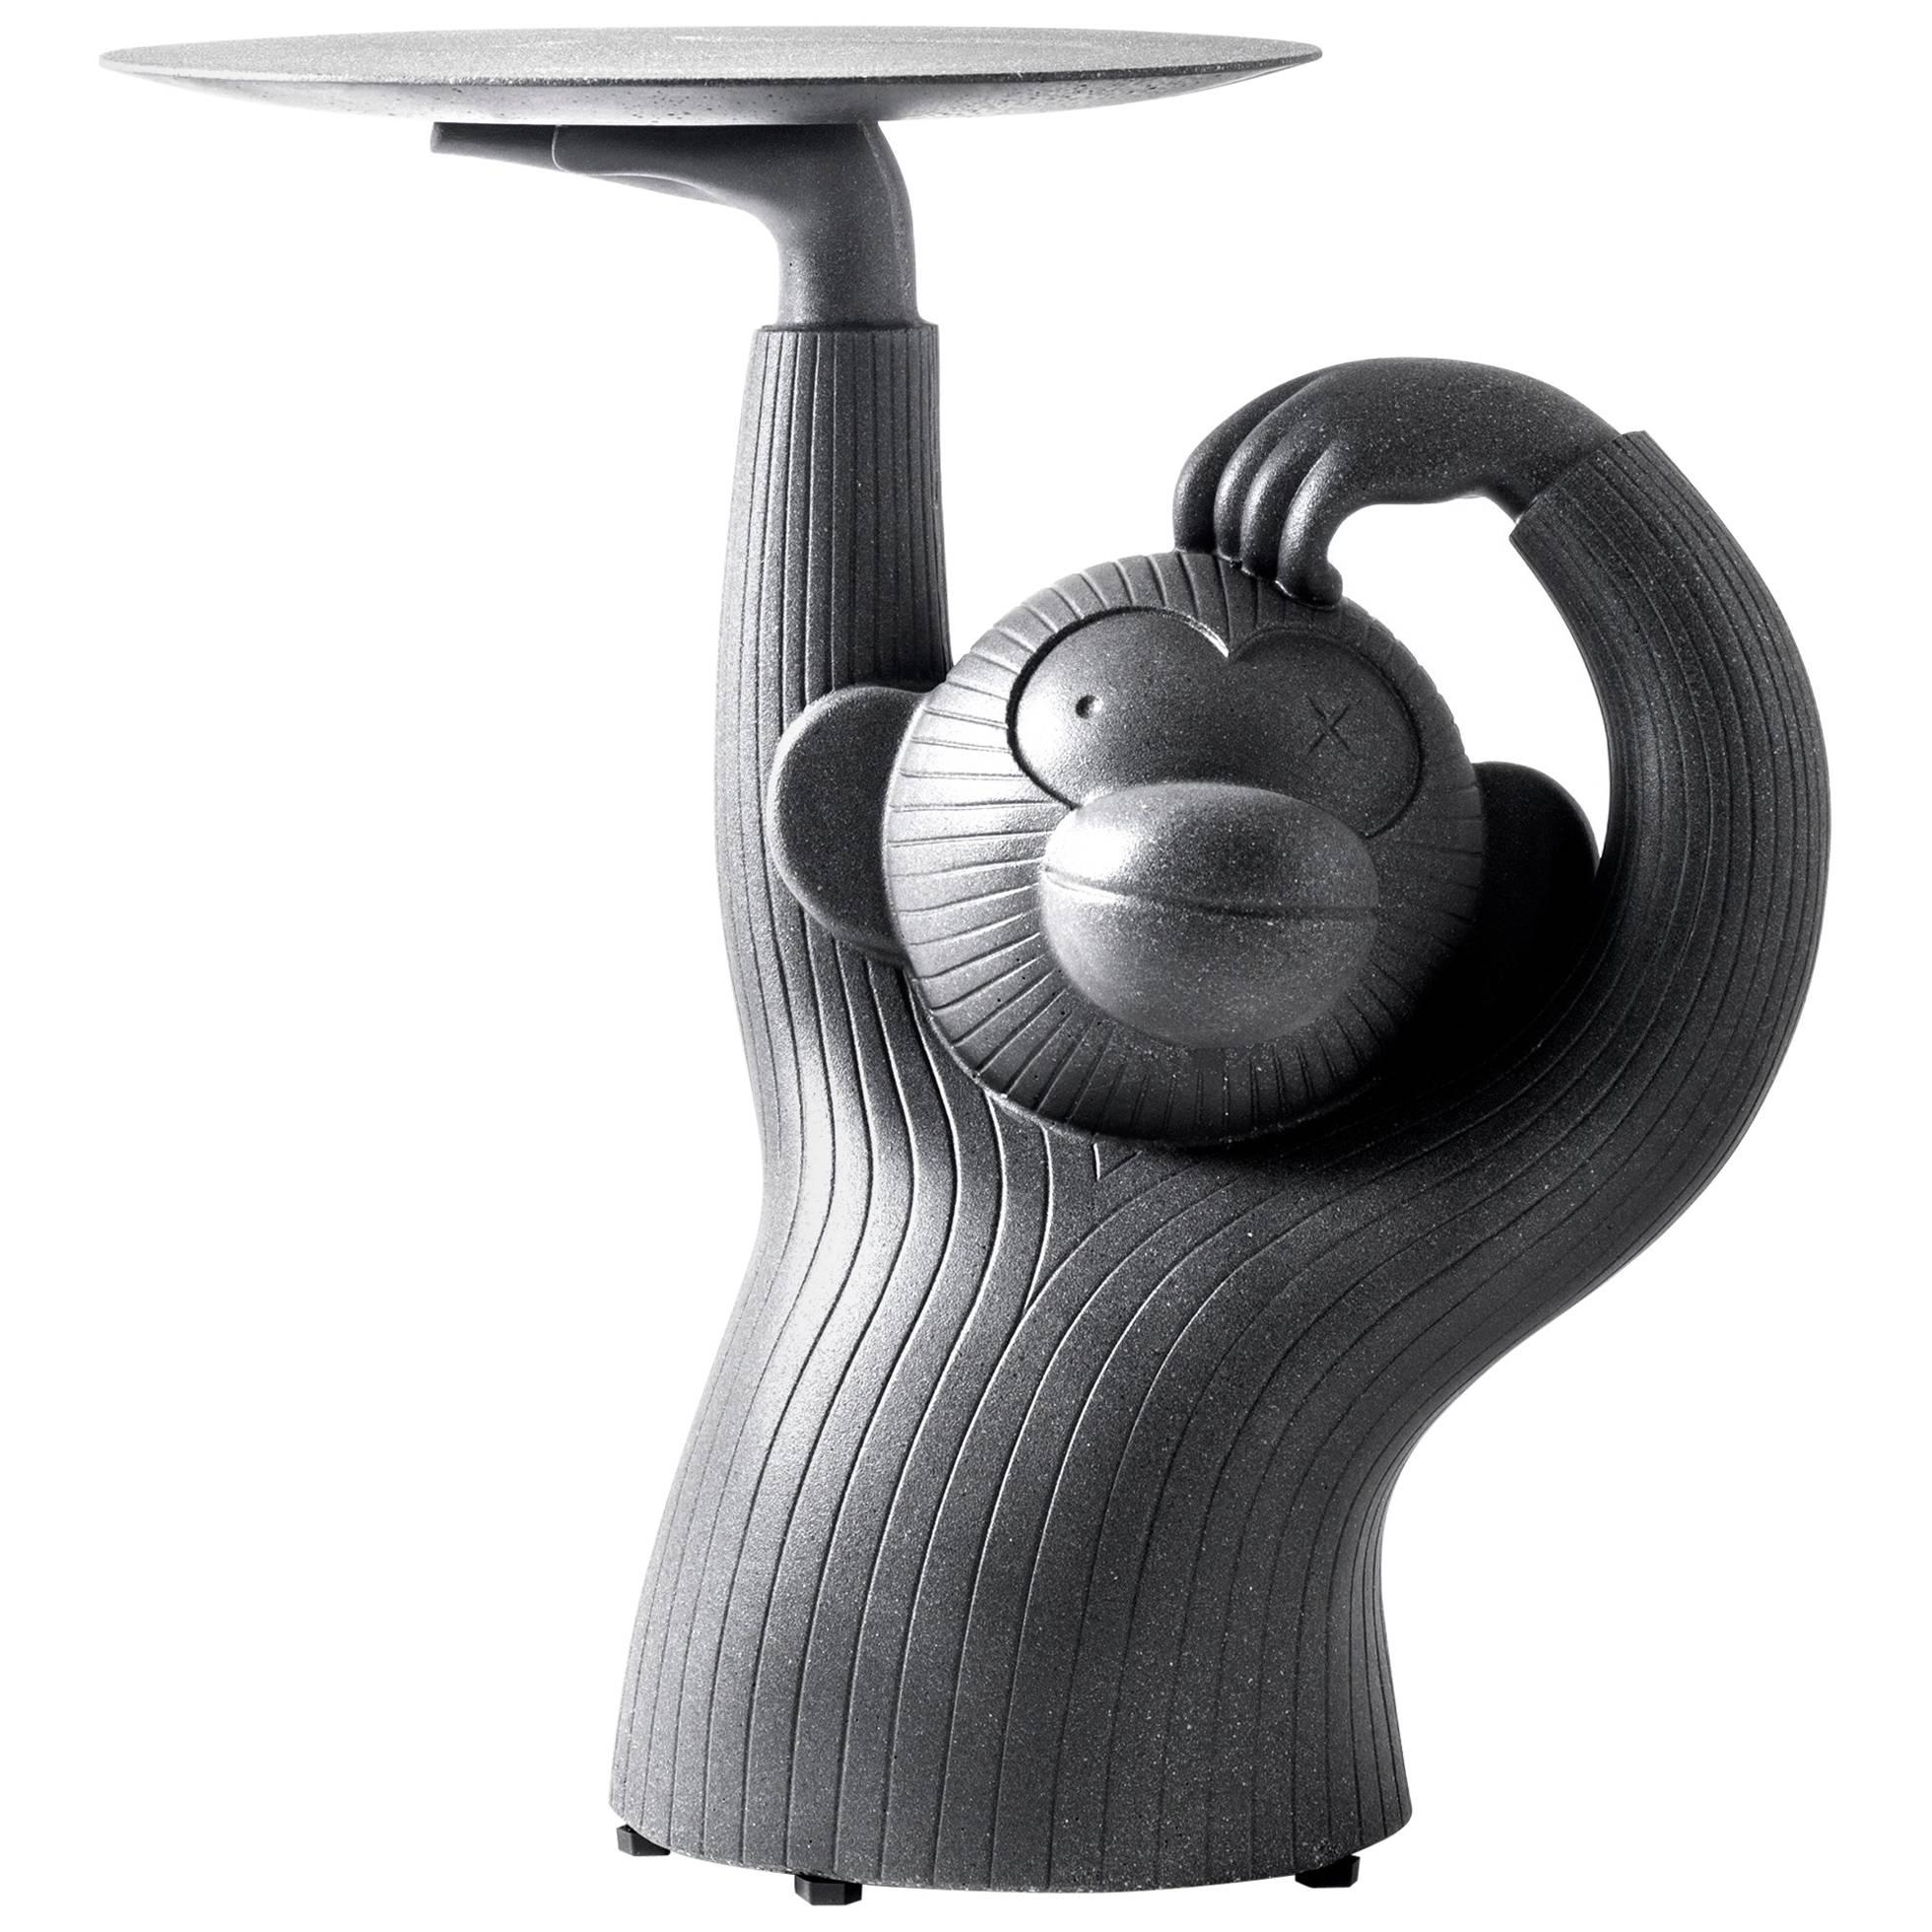 Monkey side table in black concrete by Jaime Hayon